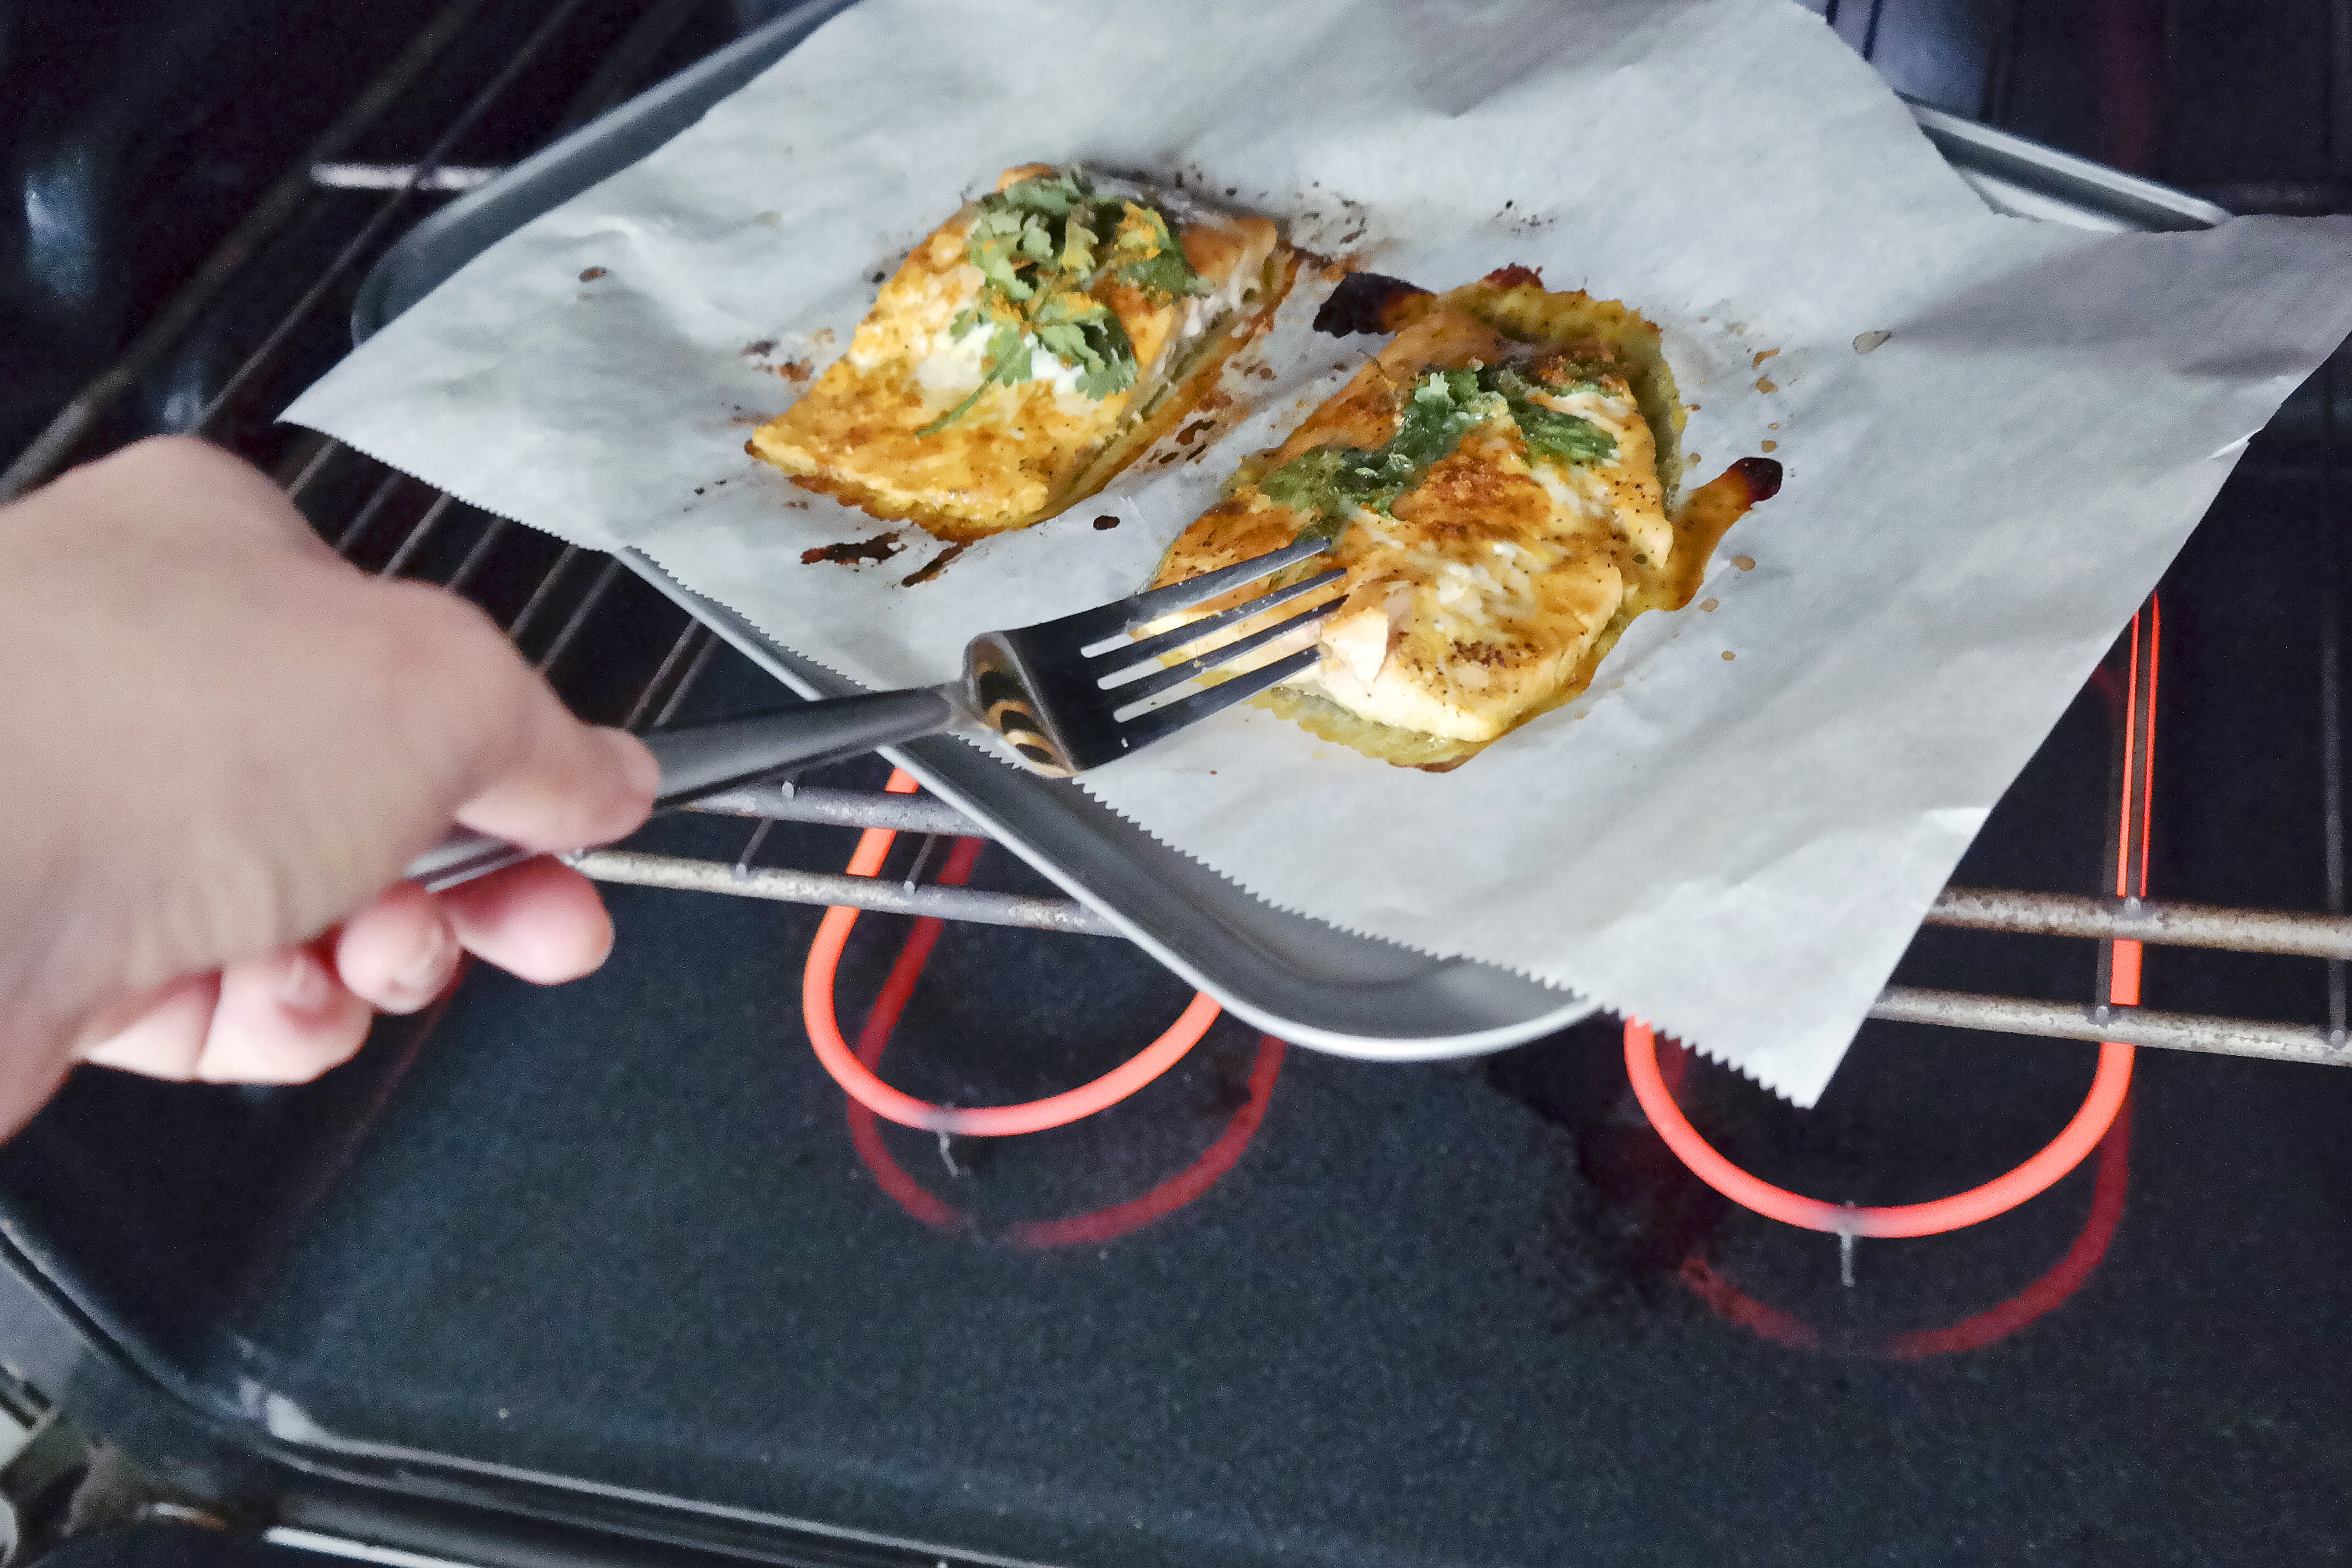 How To Cook Prepared Stuffed Salmon In The Oven